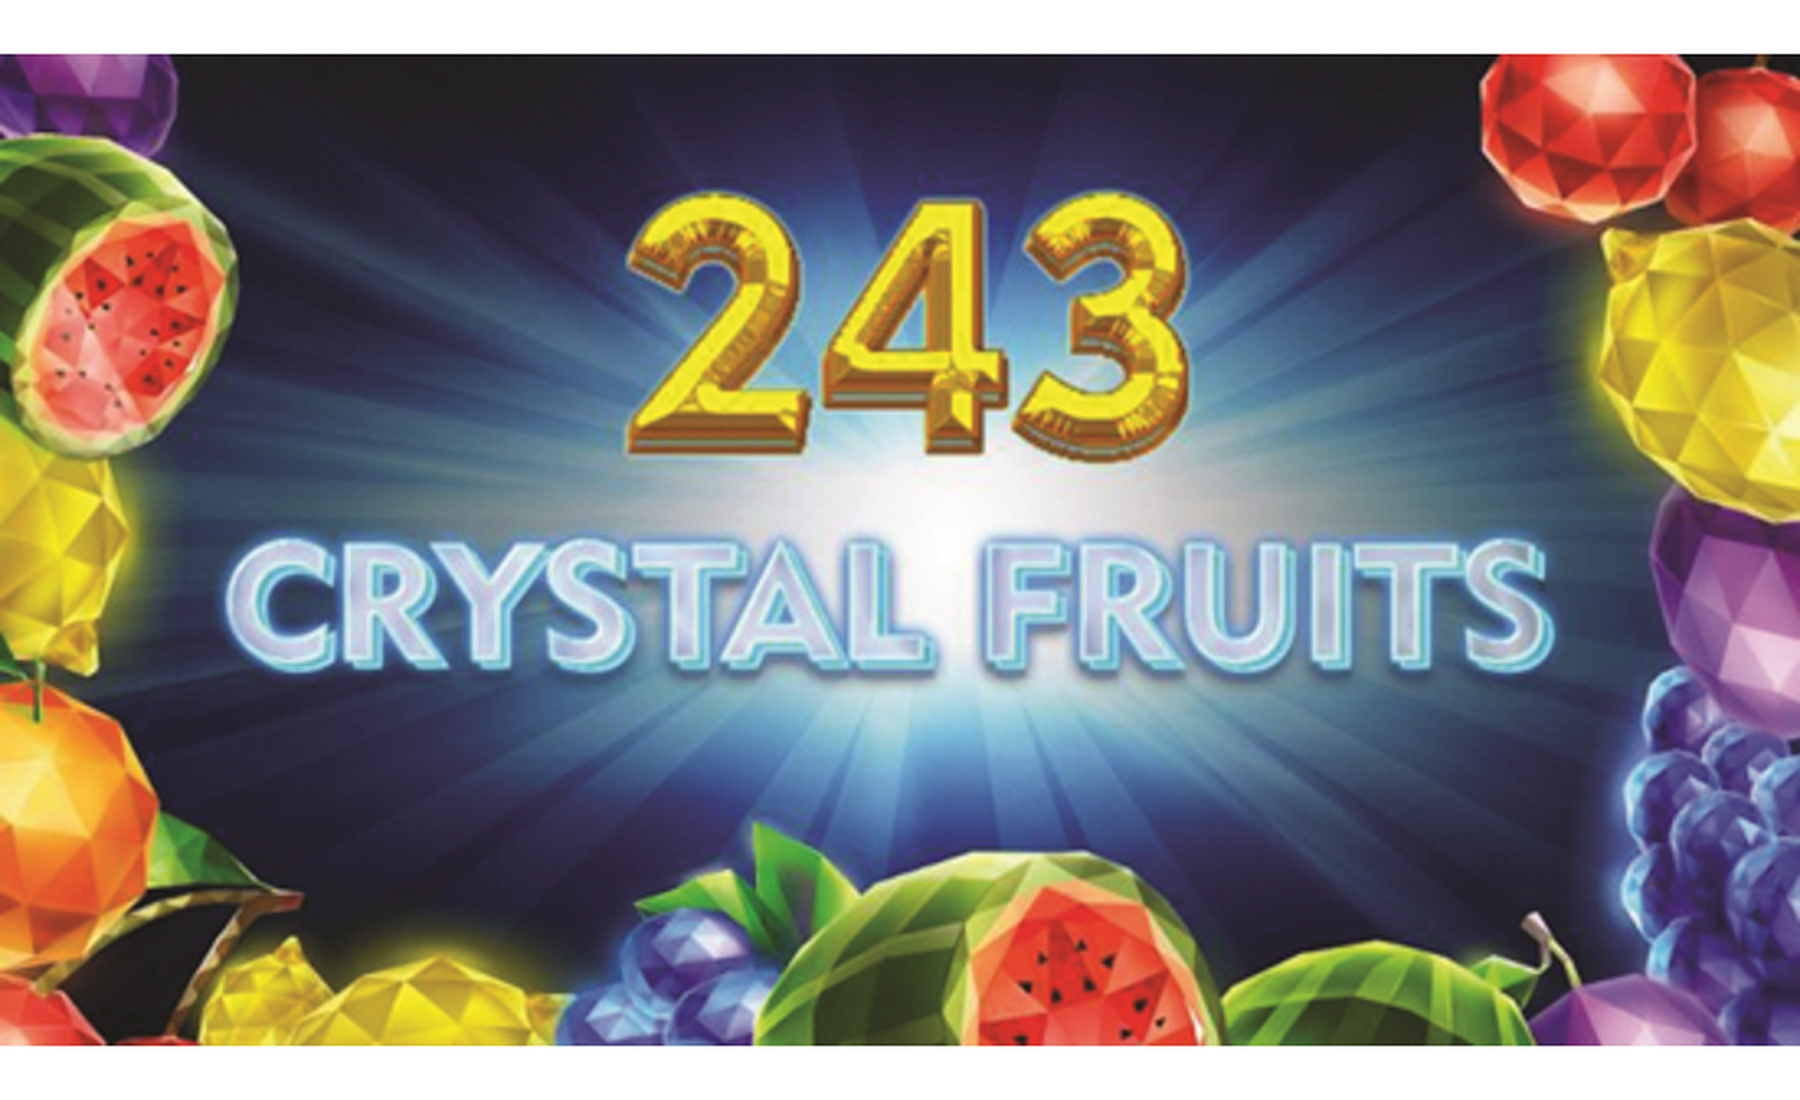 The 243 Crystal Fruits Online Slot Demo Game by Tom Horn Gaming